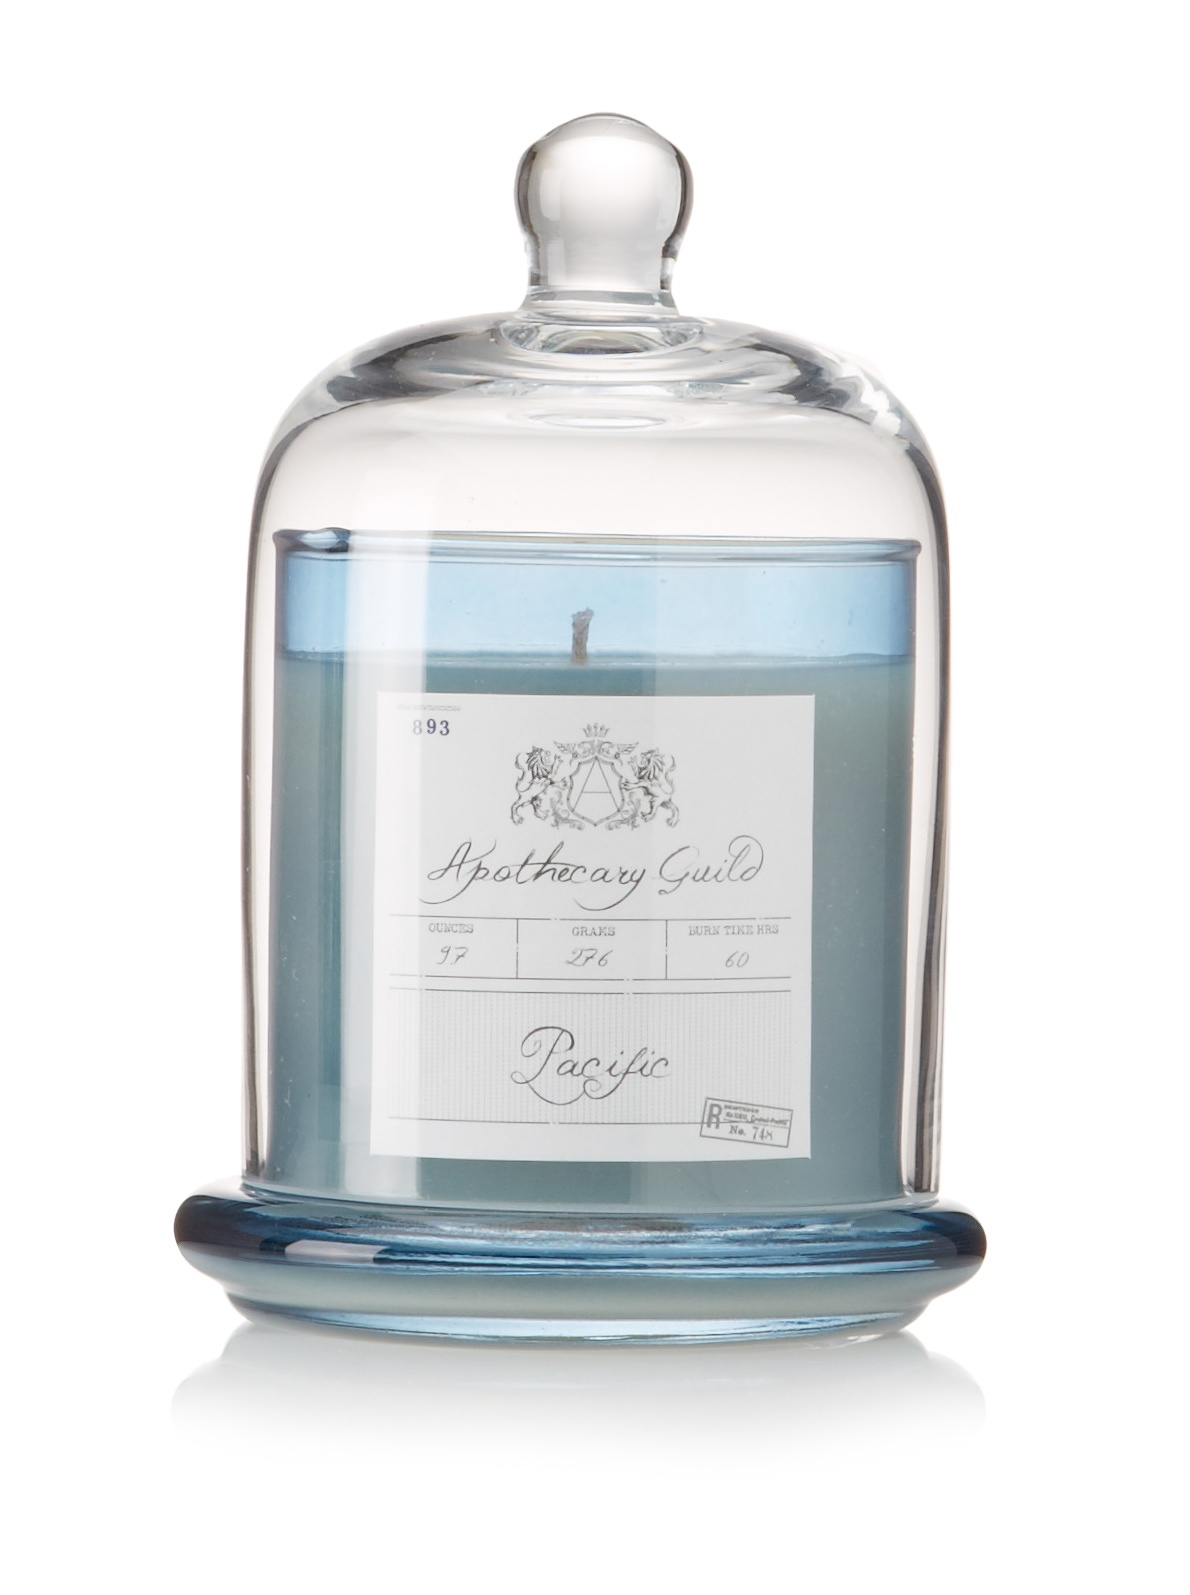 Apothecary Guild Candle Jar with Glass Dome, Pacific, Medium